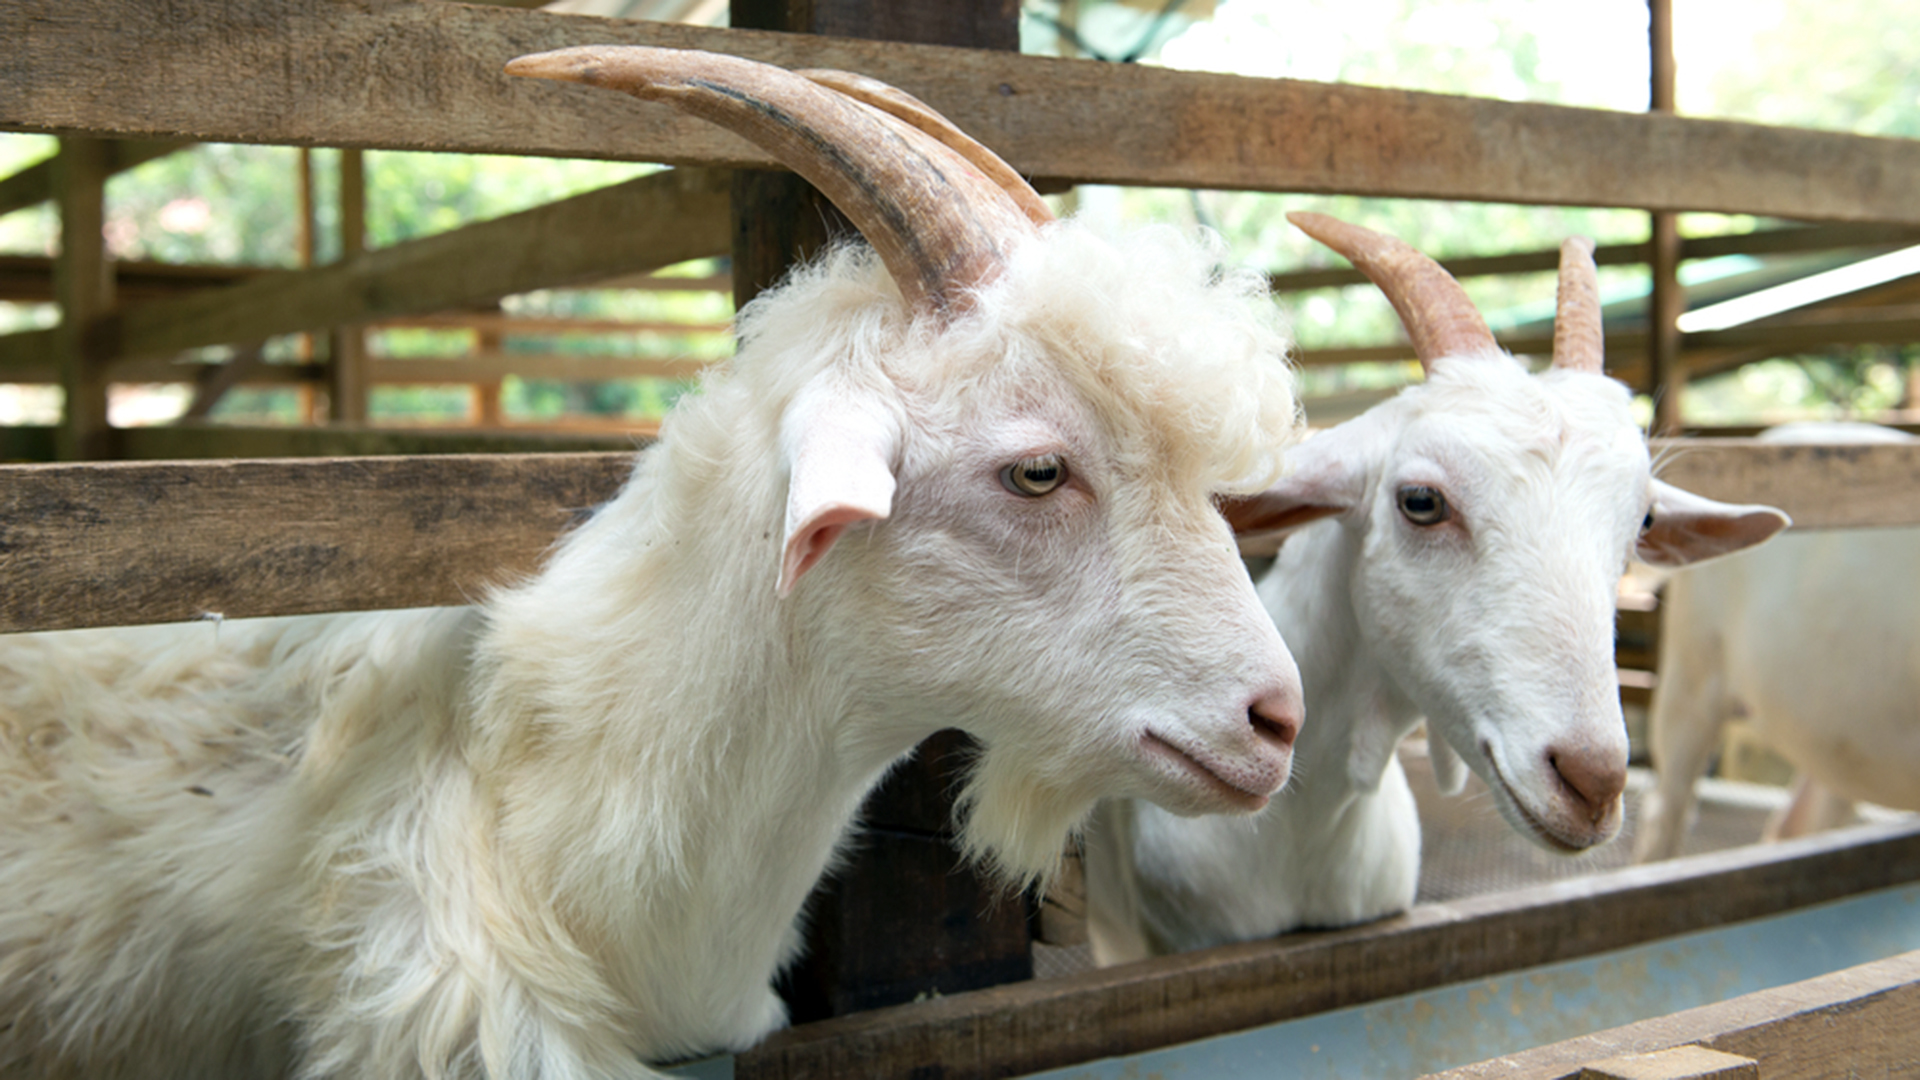 Alabama Couple To Give Away Goat Farm To Essay Winner